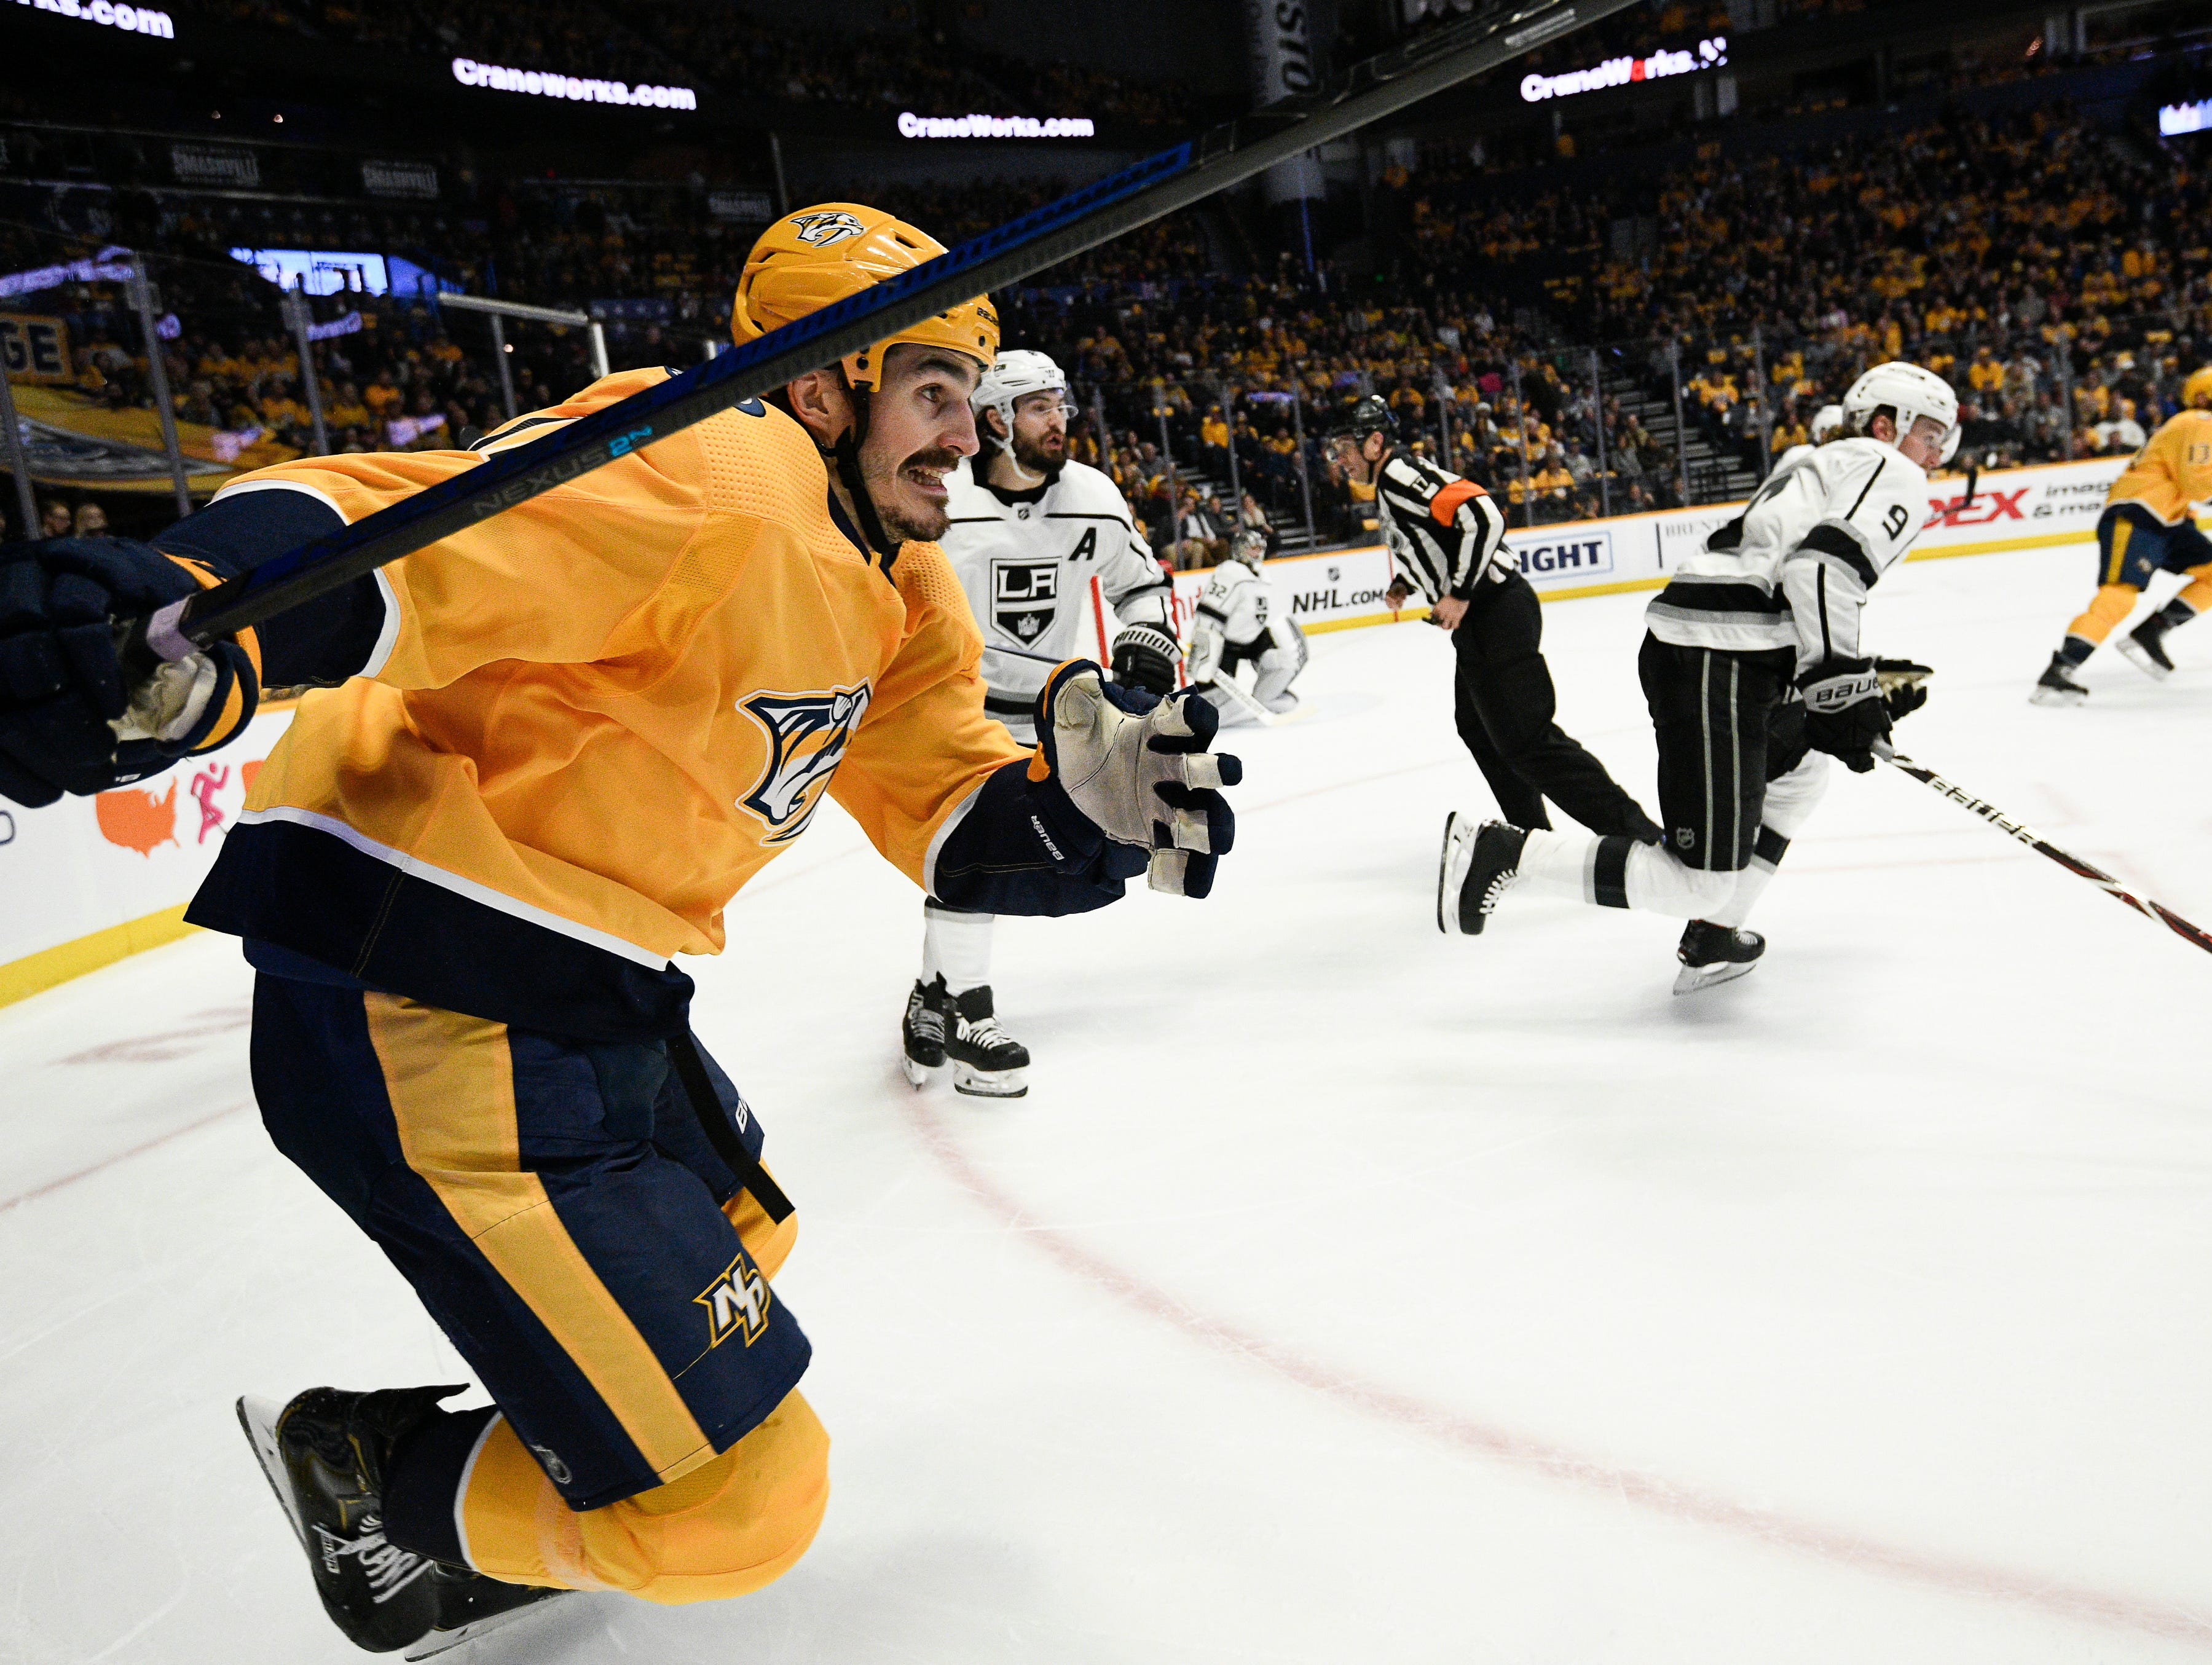 Predators center Brian Boyle (11) races up the ice past the Kings defense during the first period at Bridgestone Arena Thursday, Feb. 21, 2019 in Nashville, Tenn.